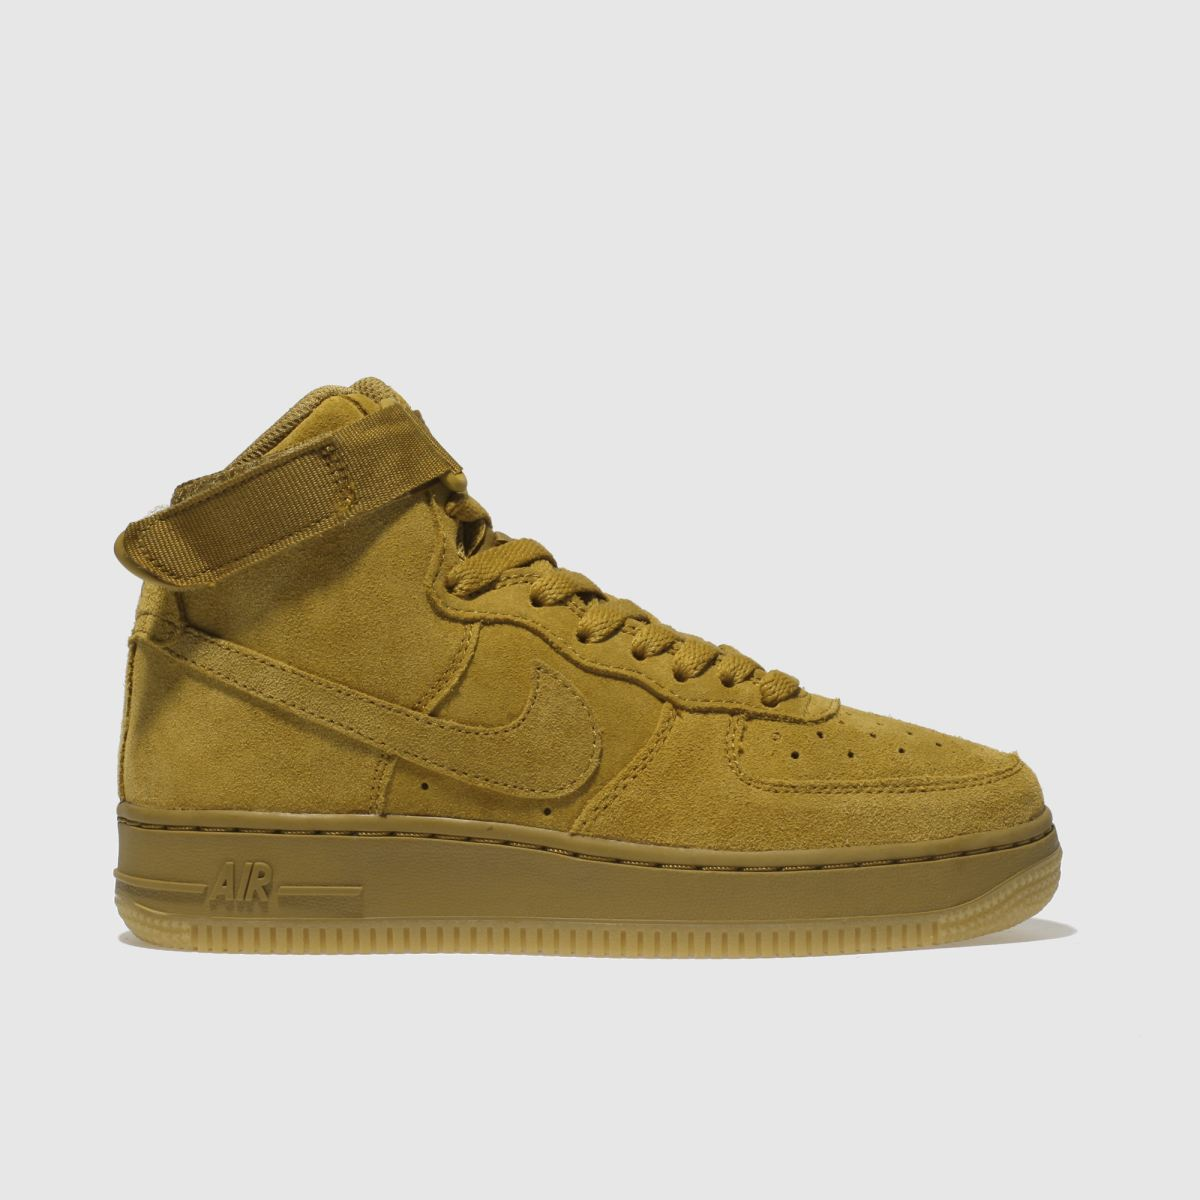 Nike Tan Air Force 1 High Lv8 Trainers Youth